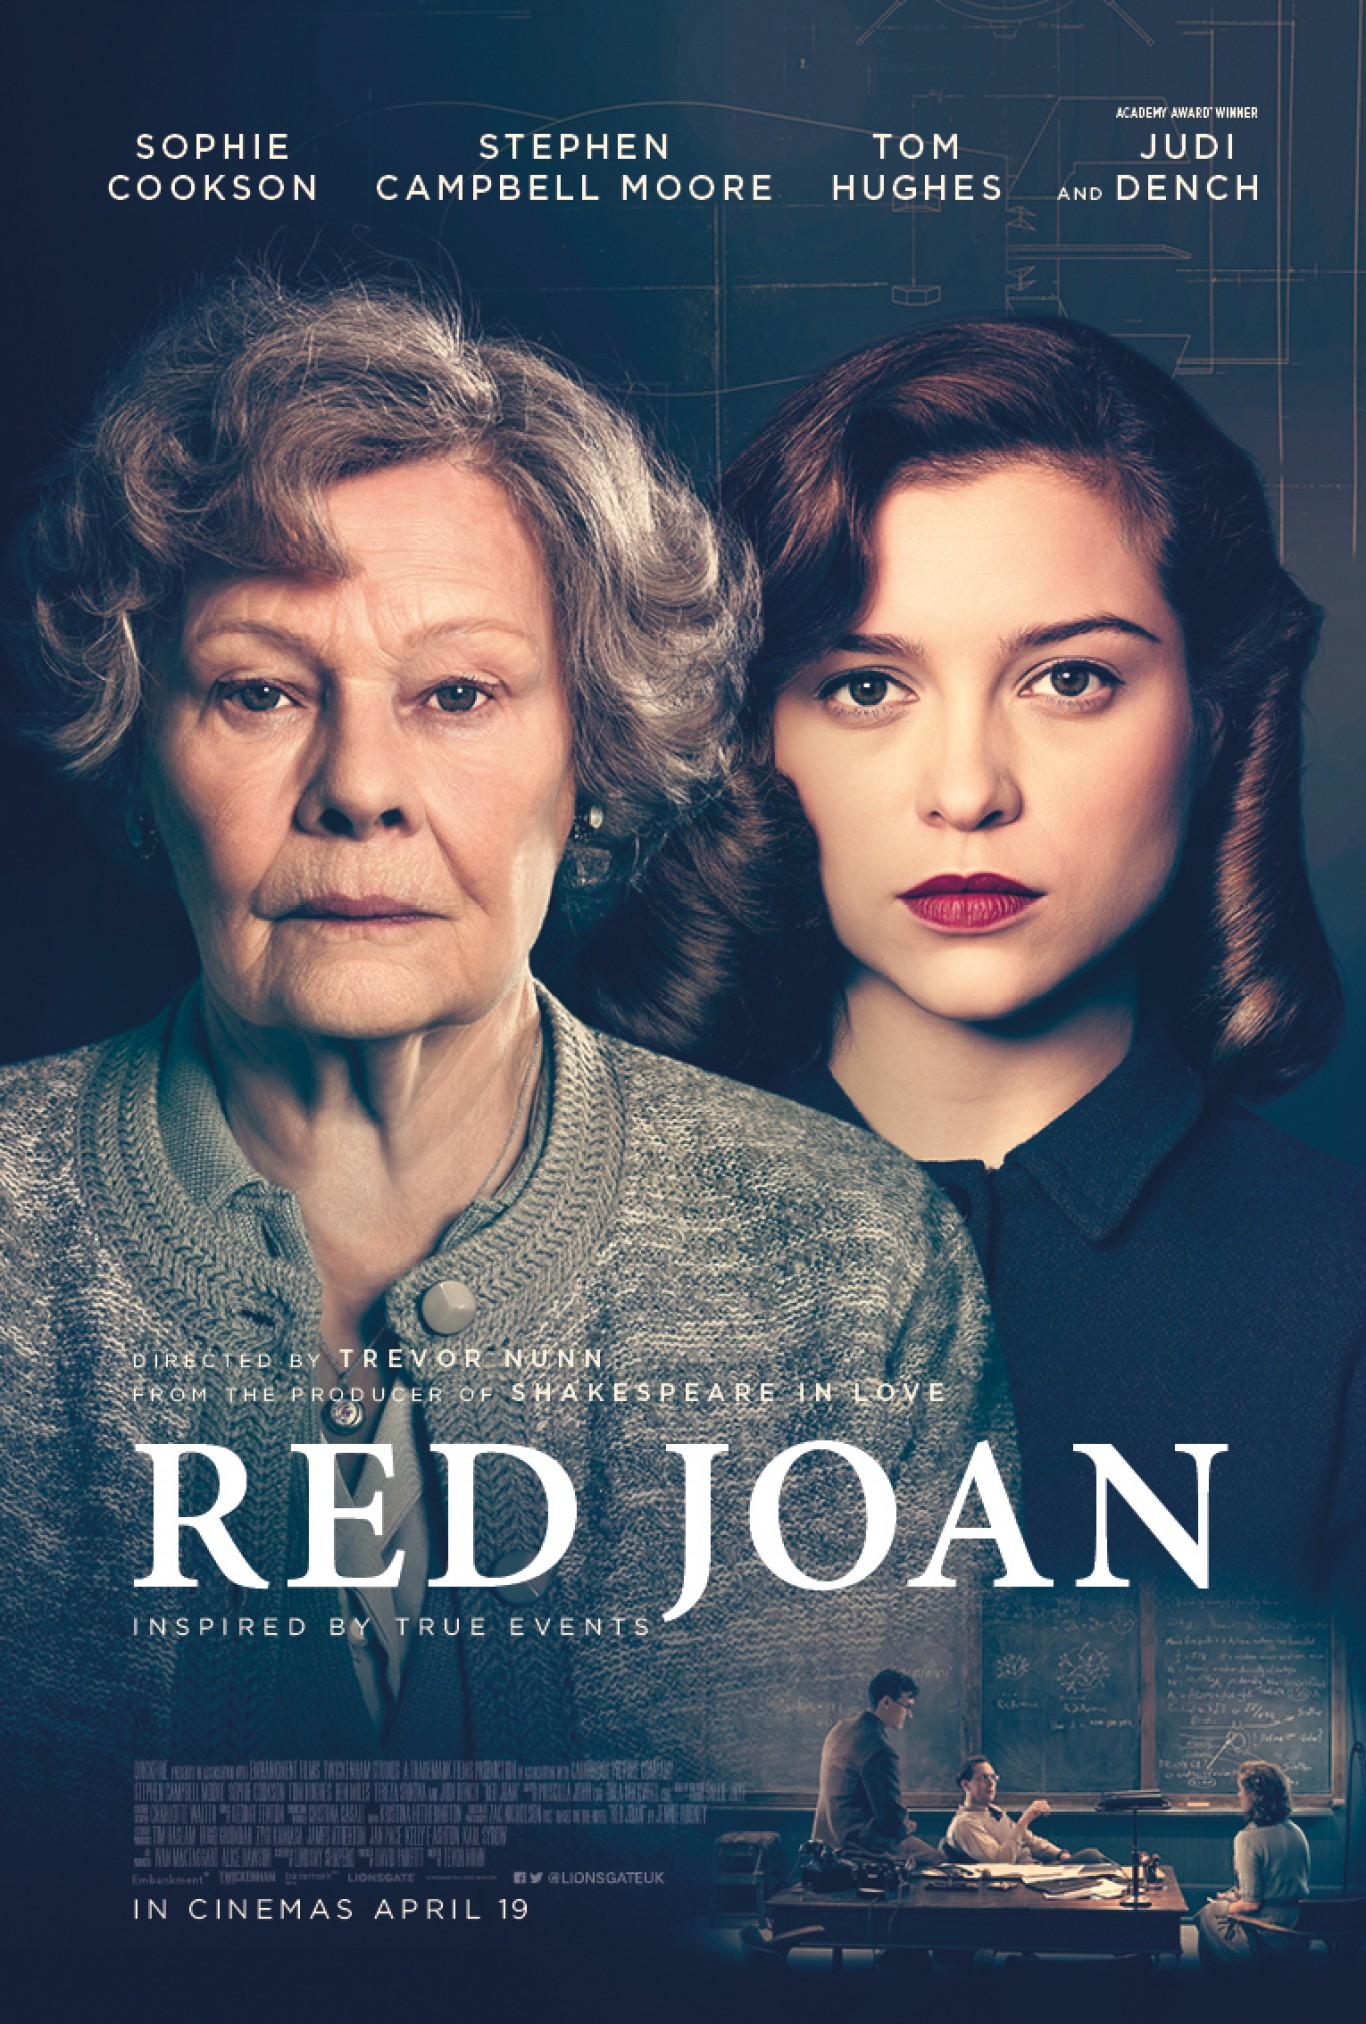 1SHT_UK_MAIN_REDJOAN_f_LoRes